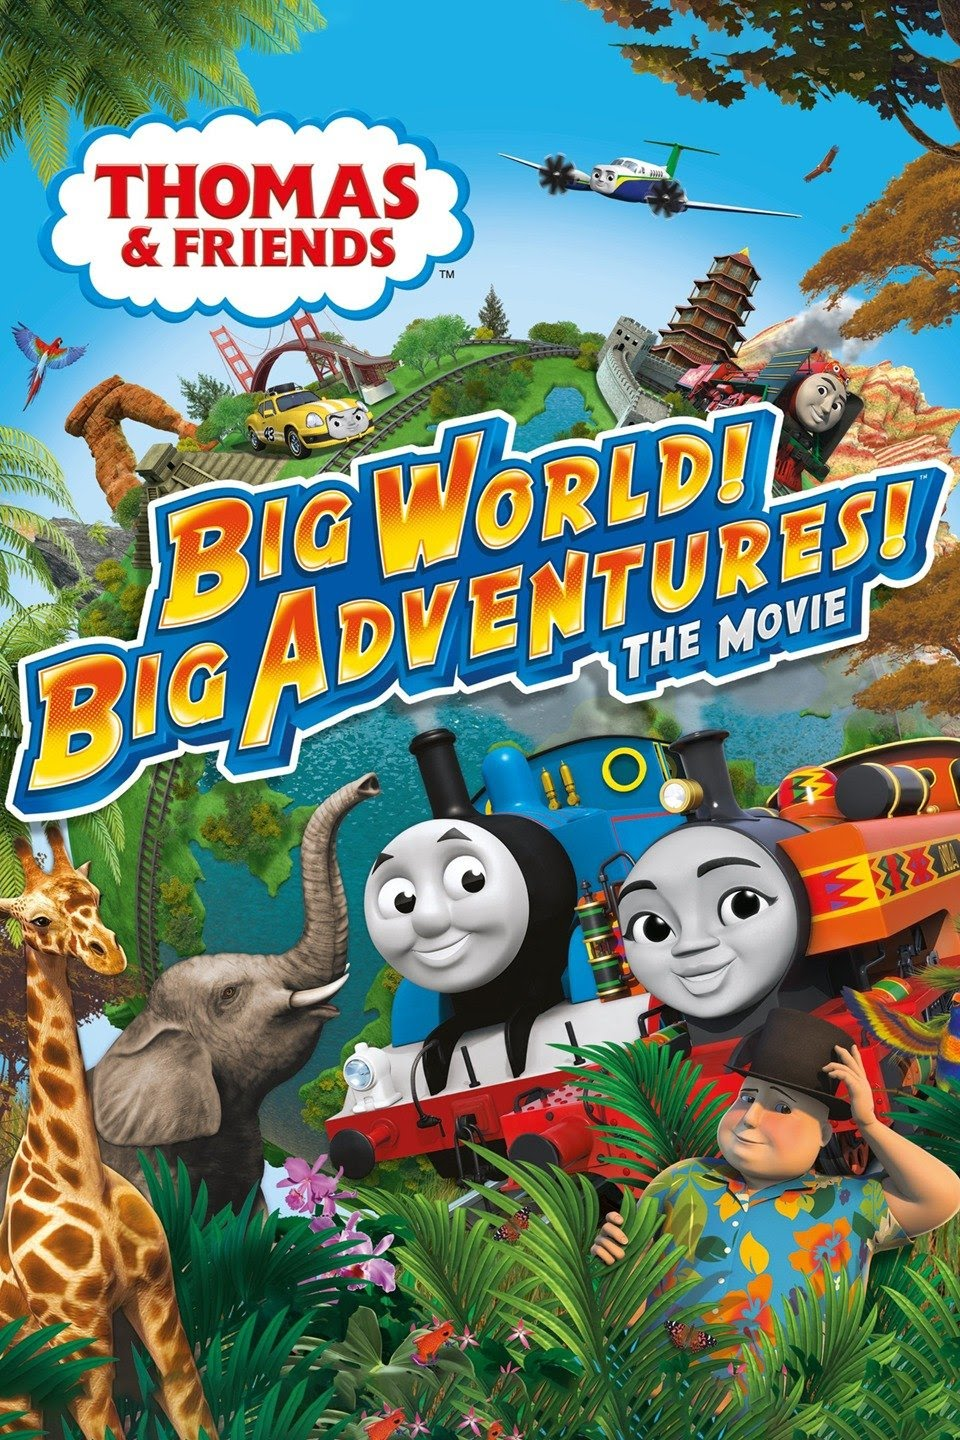 Thomas and Friends Big World! Big Adventures (2018) 1080p AMZN WEB-DL DDP5.1 H264 – CMRG